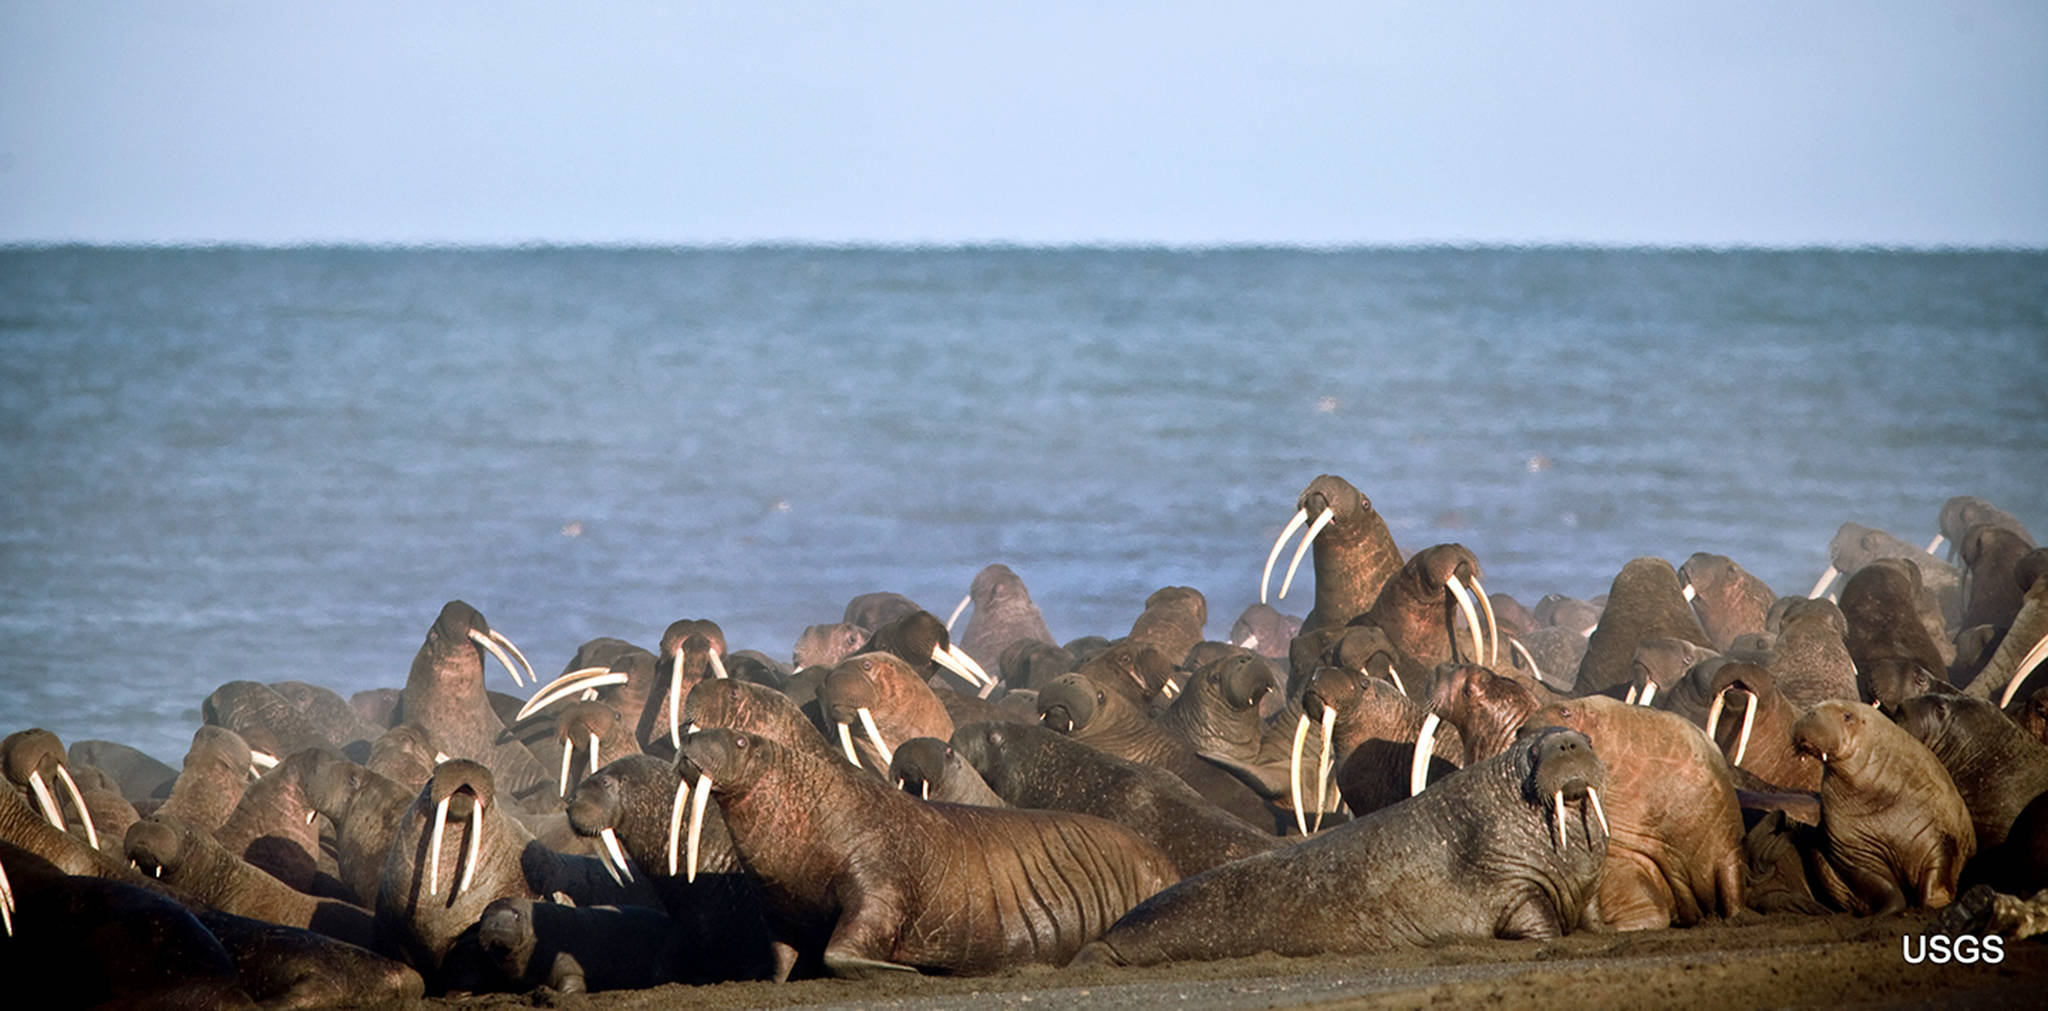 In this September 2013 photo, walruses gather to rest on the shores of the Chukchi Sea near the coastal village of Point Lay, Alaska. (Ryan Kingsbery/USGS via AP, File)